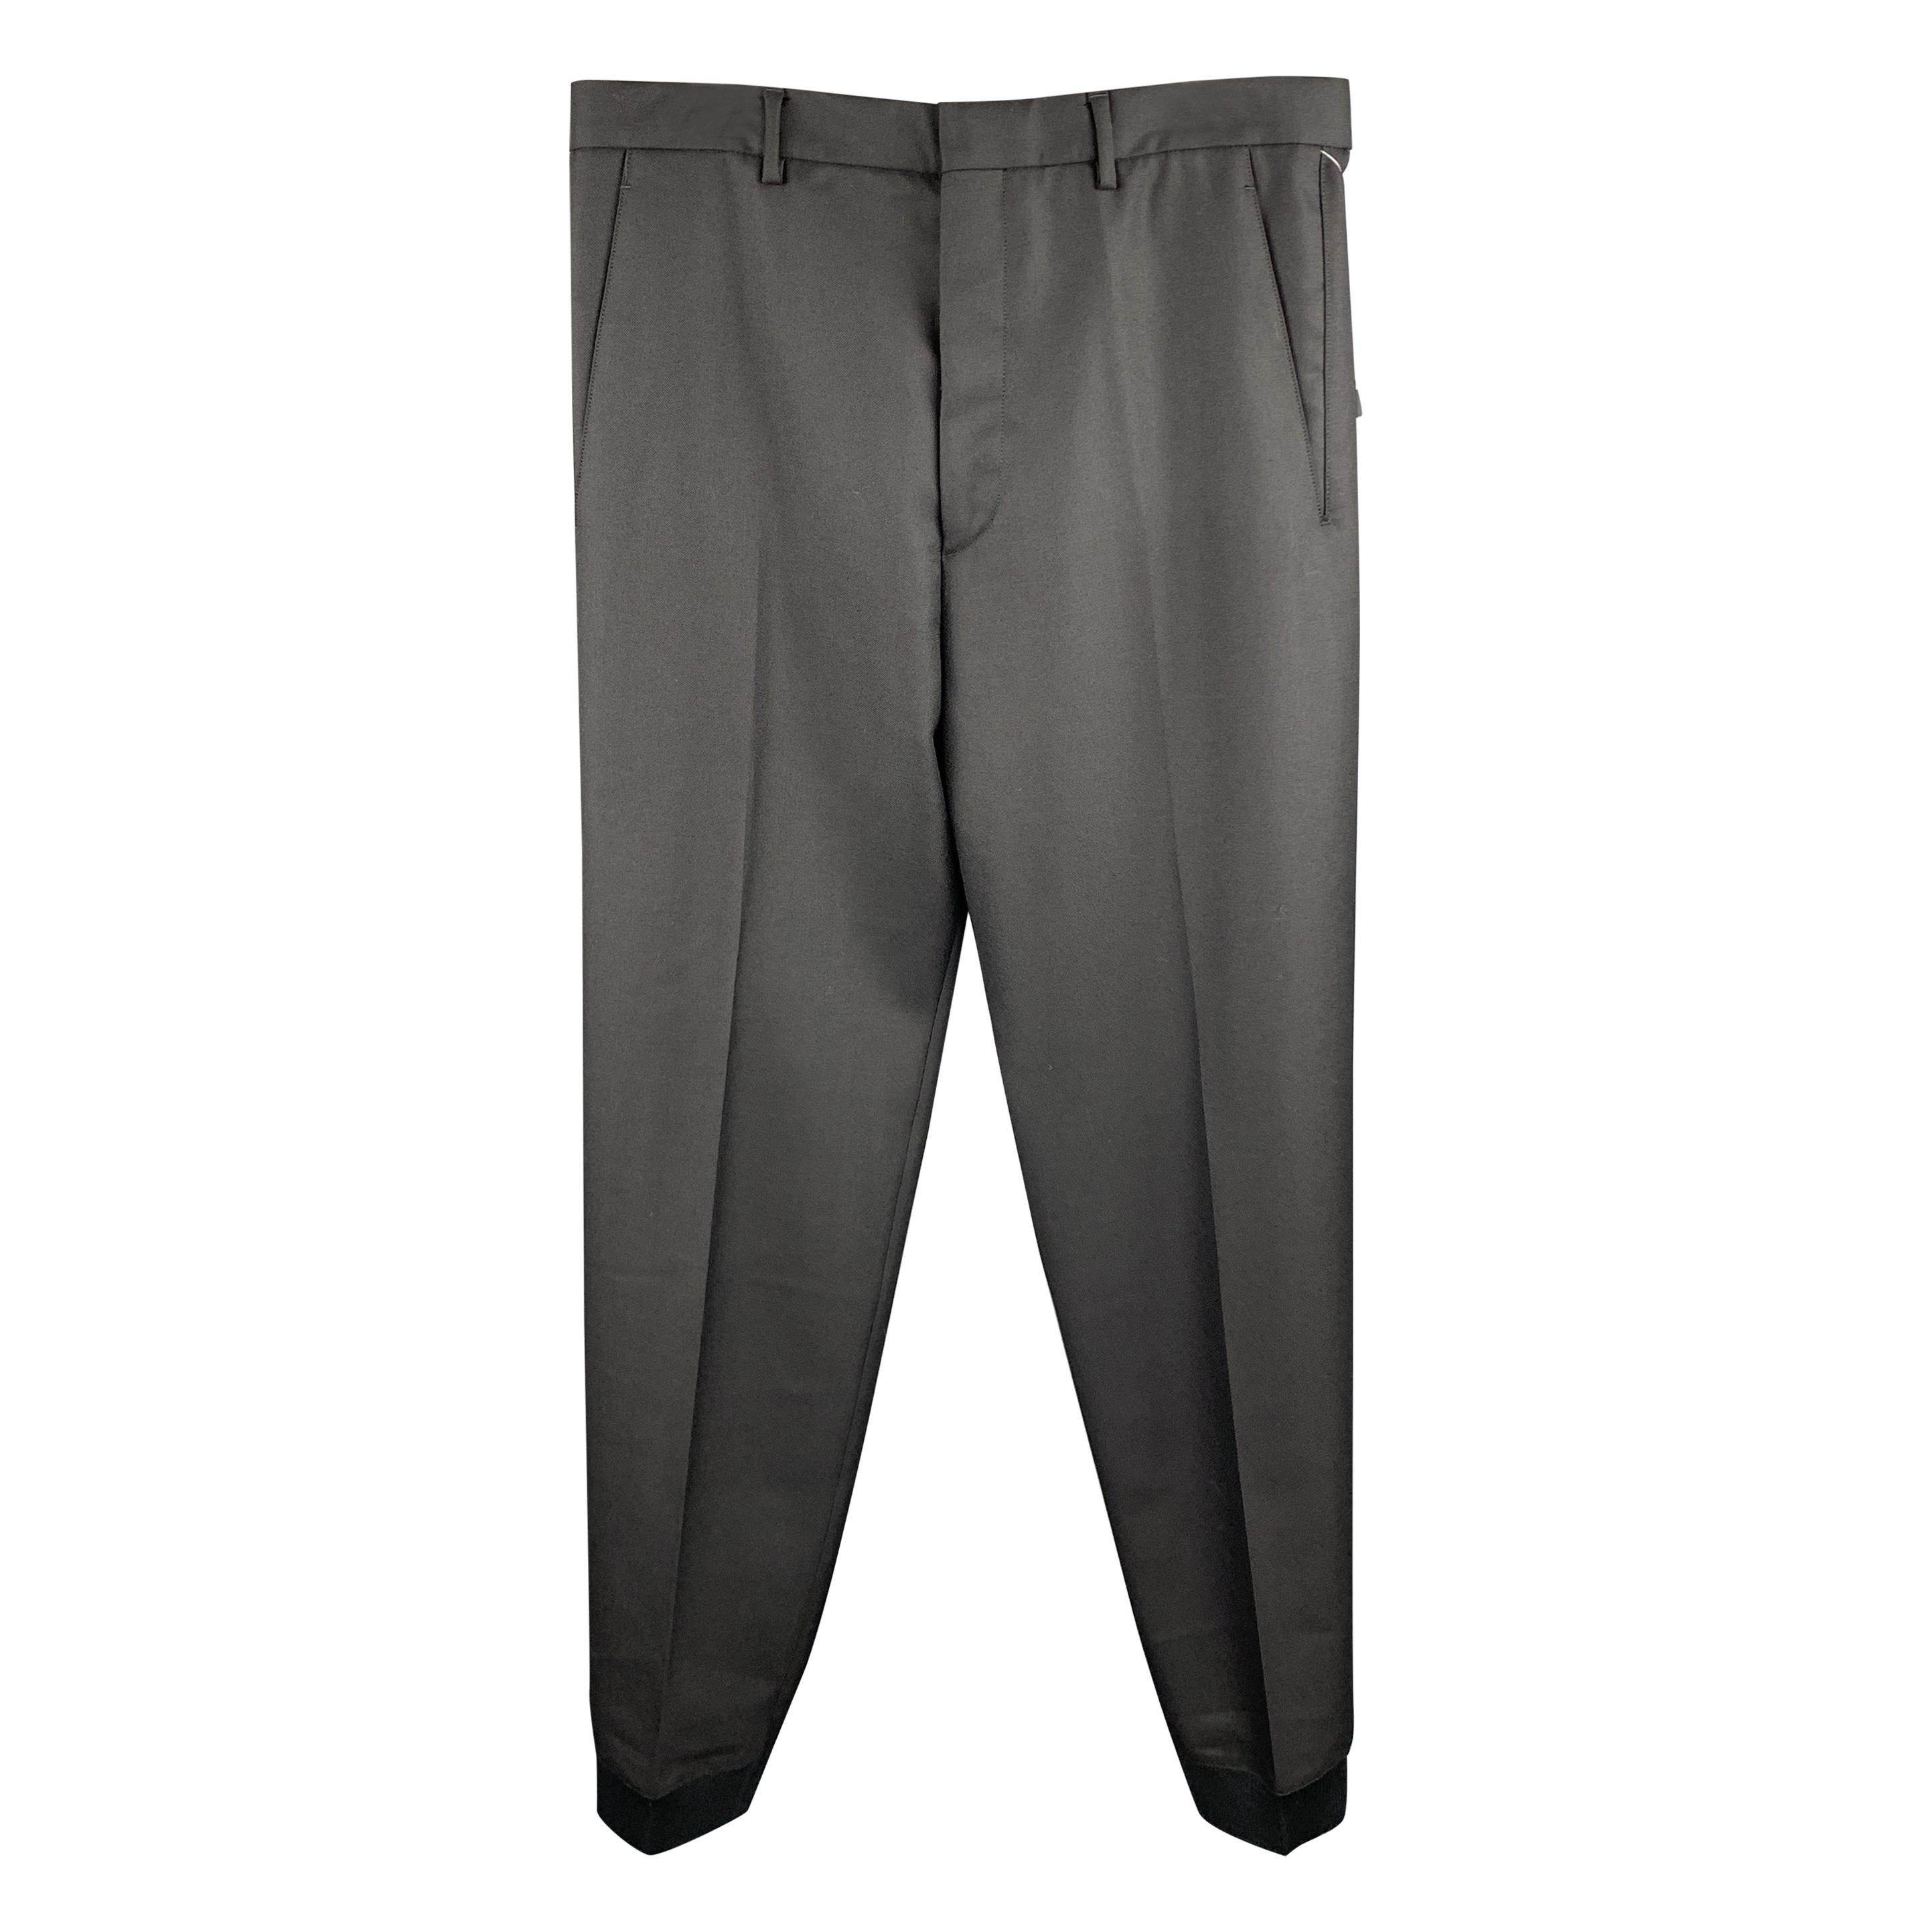 LANVIN Size 32 Black Solid Wool Elastic Cuffs Casual Pants